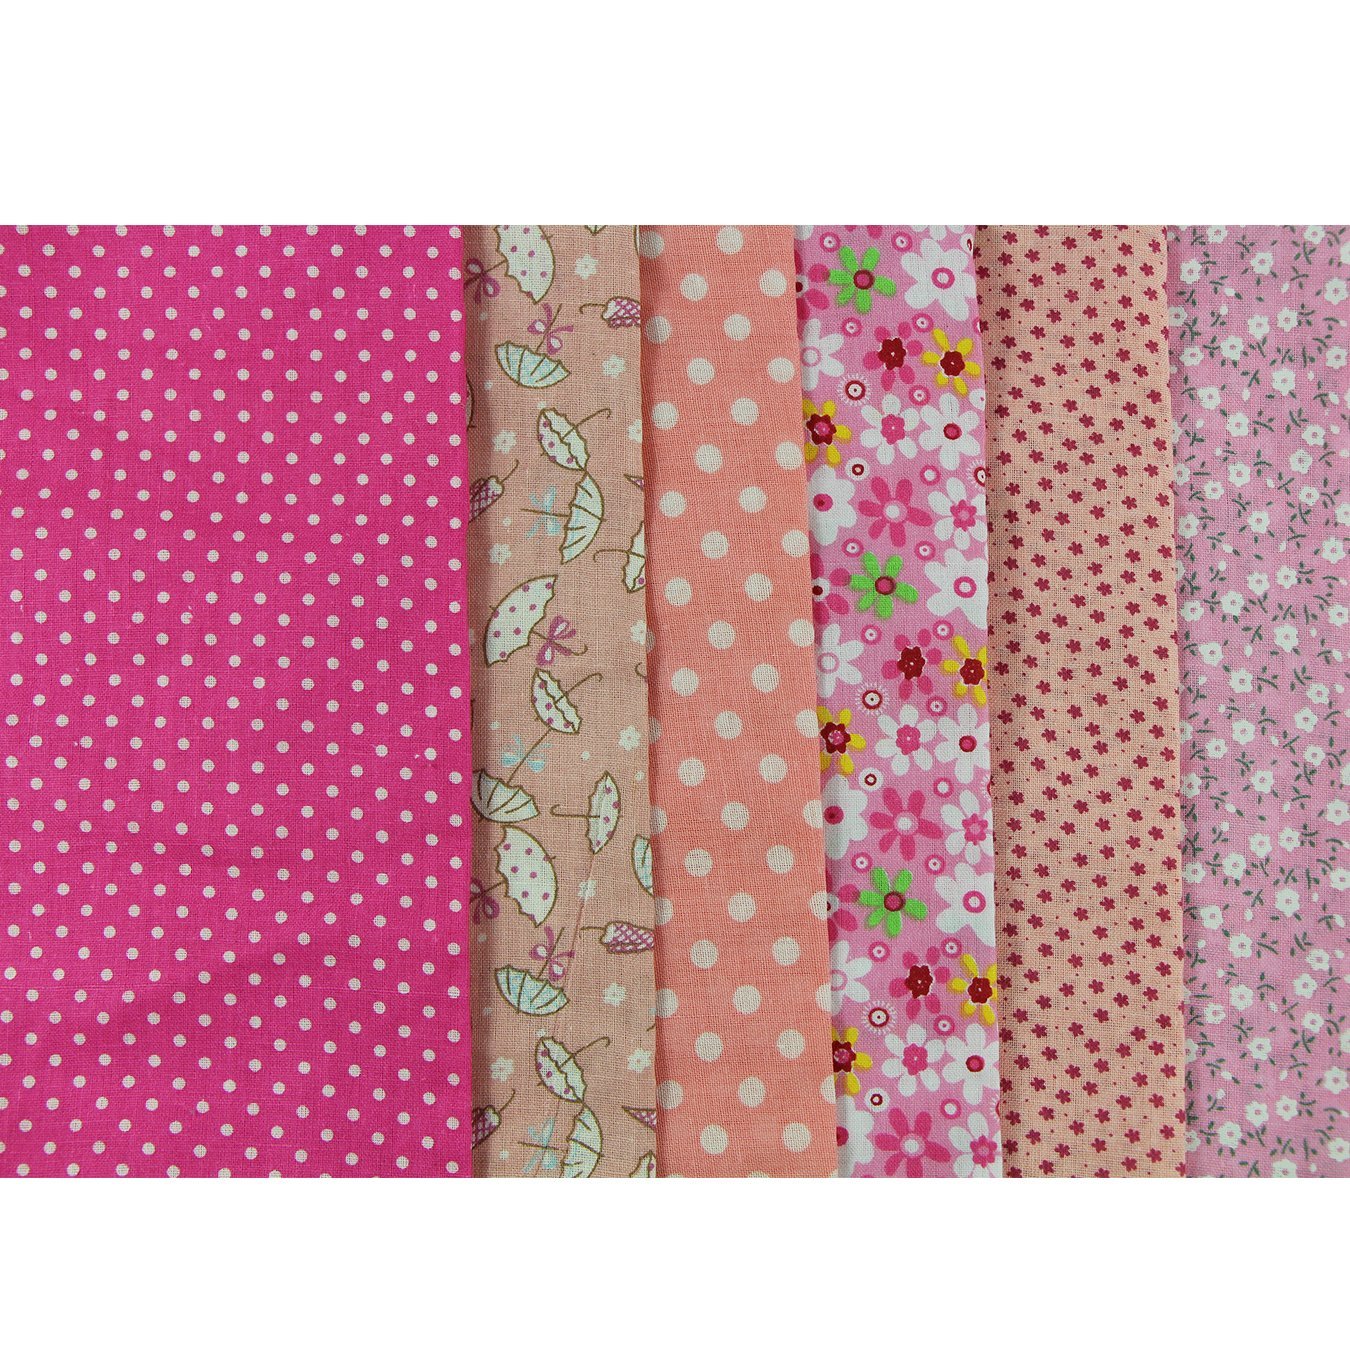 UOOOM 6pcs 50 x 50cm Patchwork Cotton Fabric DIY Handmade Sewing Quilting Fabric Different Designs (Tone-Red) ZHICHENG